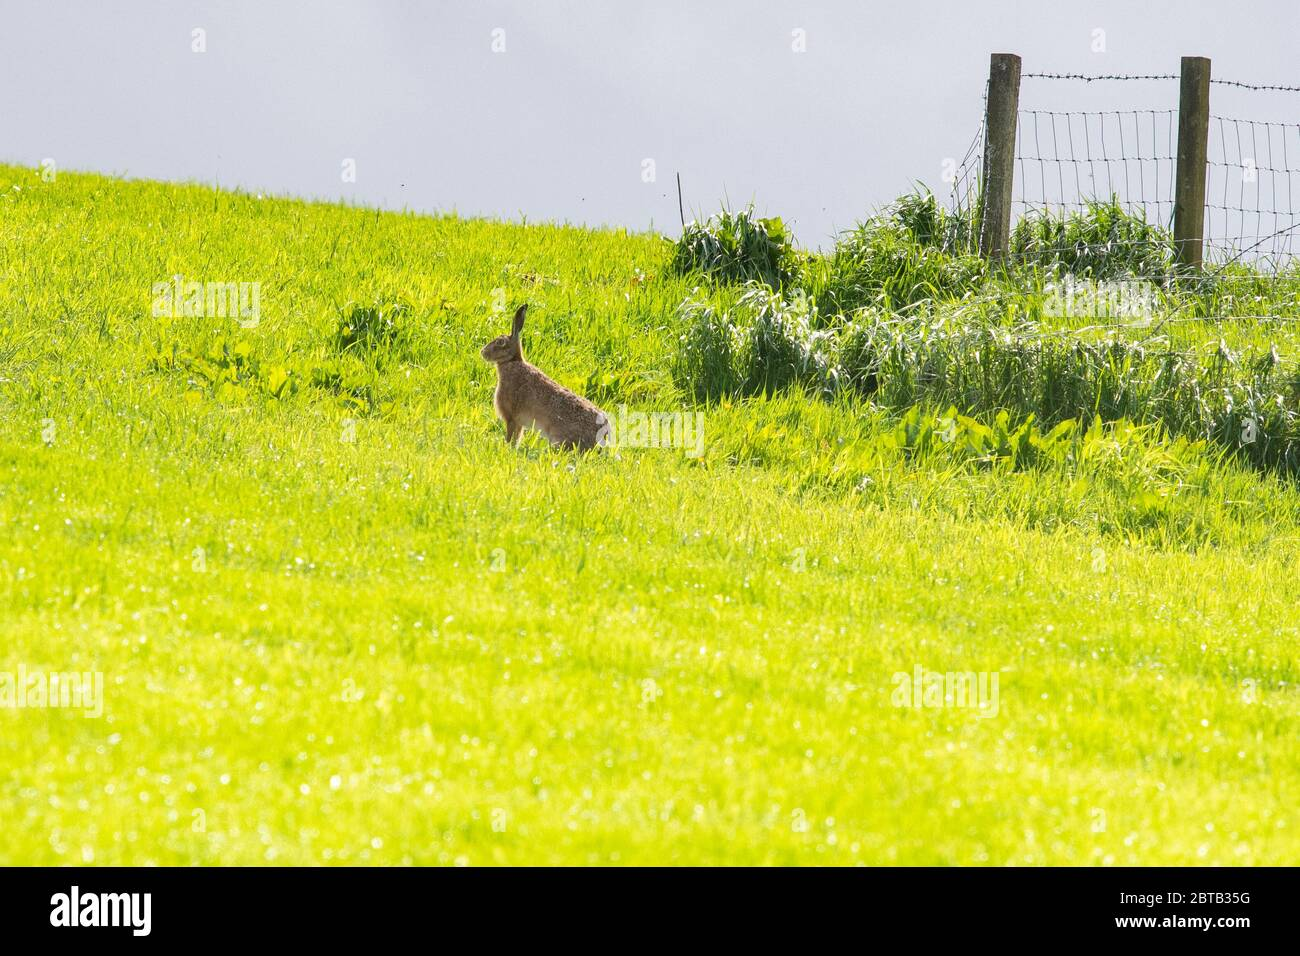 Stirlingshire, Scotland, UK. 24th May, 2020. UK weather - a hare is illuminated by brief sunshine on a mainly cloudy day, becoming brighter in the afternoon in Stirlingshire, Scotland Credit: Kay Roxby/Alamy Live News Stock Photo